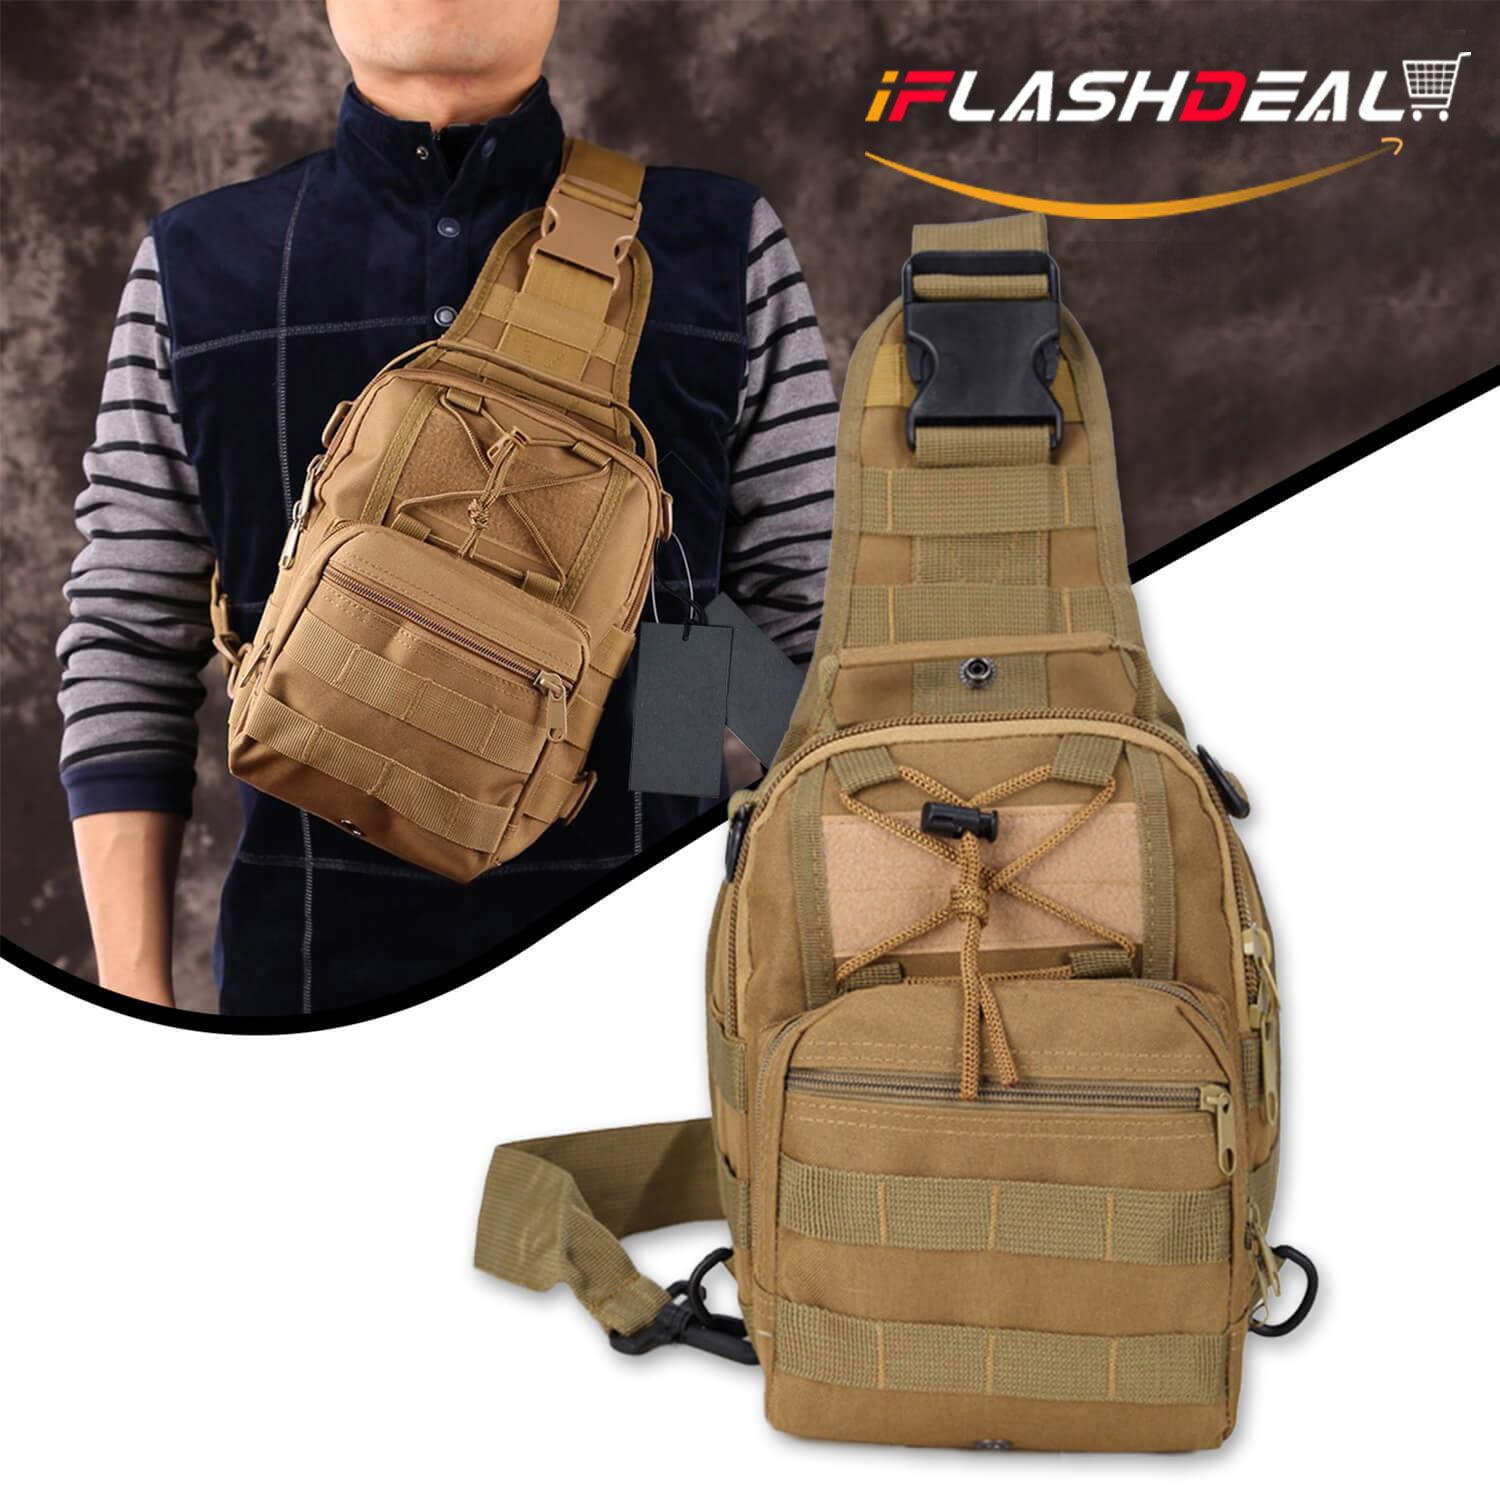 505a1413c505 iFlashDeal Tactical Sling Bag Men Crossbody Bas Outdoor Chest Pack Shoulder  Backpack Military Sport Cross Body